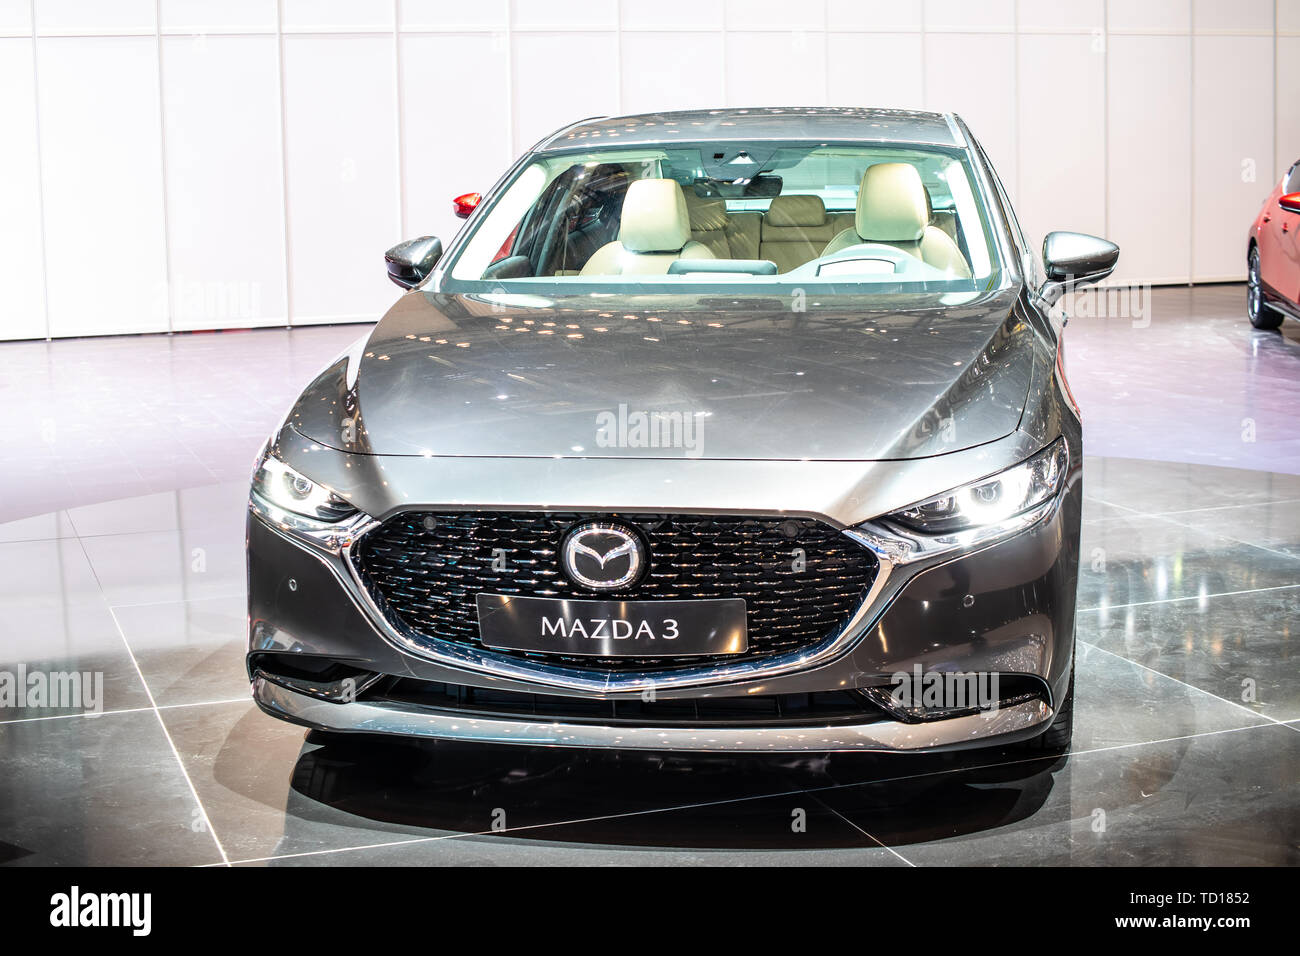 Geneva, Switzerland, March 04, 2019: all new Mazda 3 Fourth generation at Geneva International Motor Show, compact car manufactured in Japan by Mazda Stock Photo